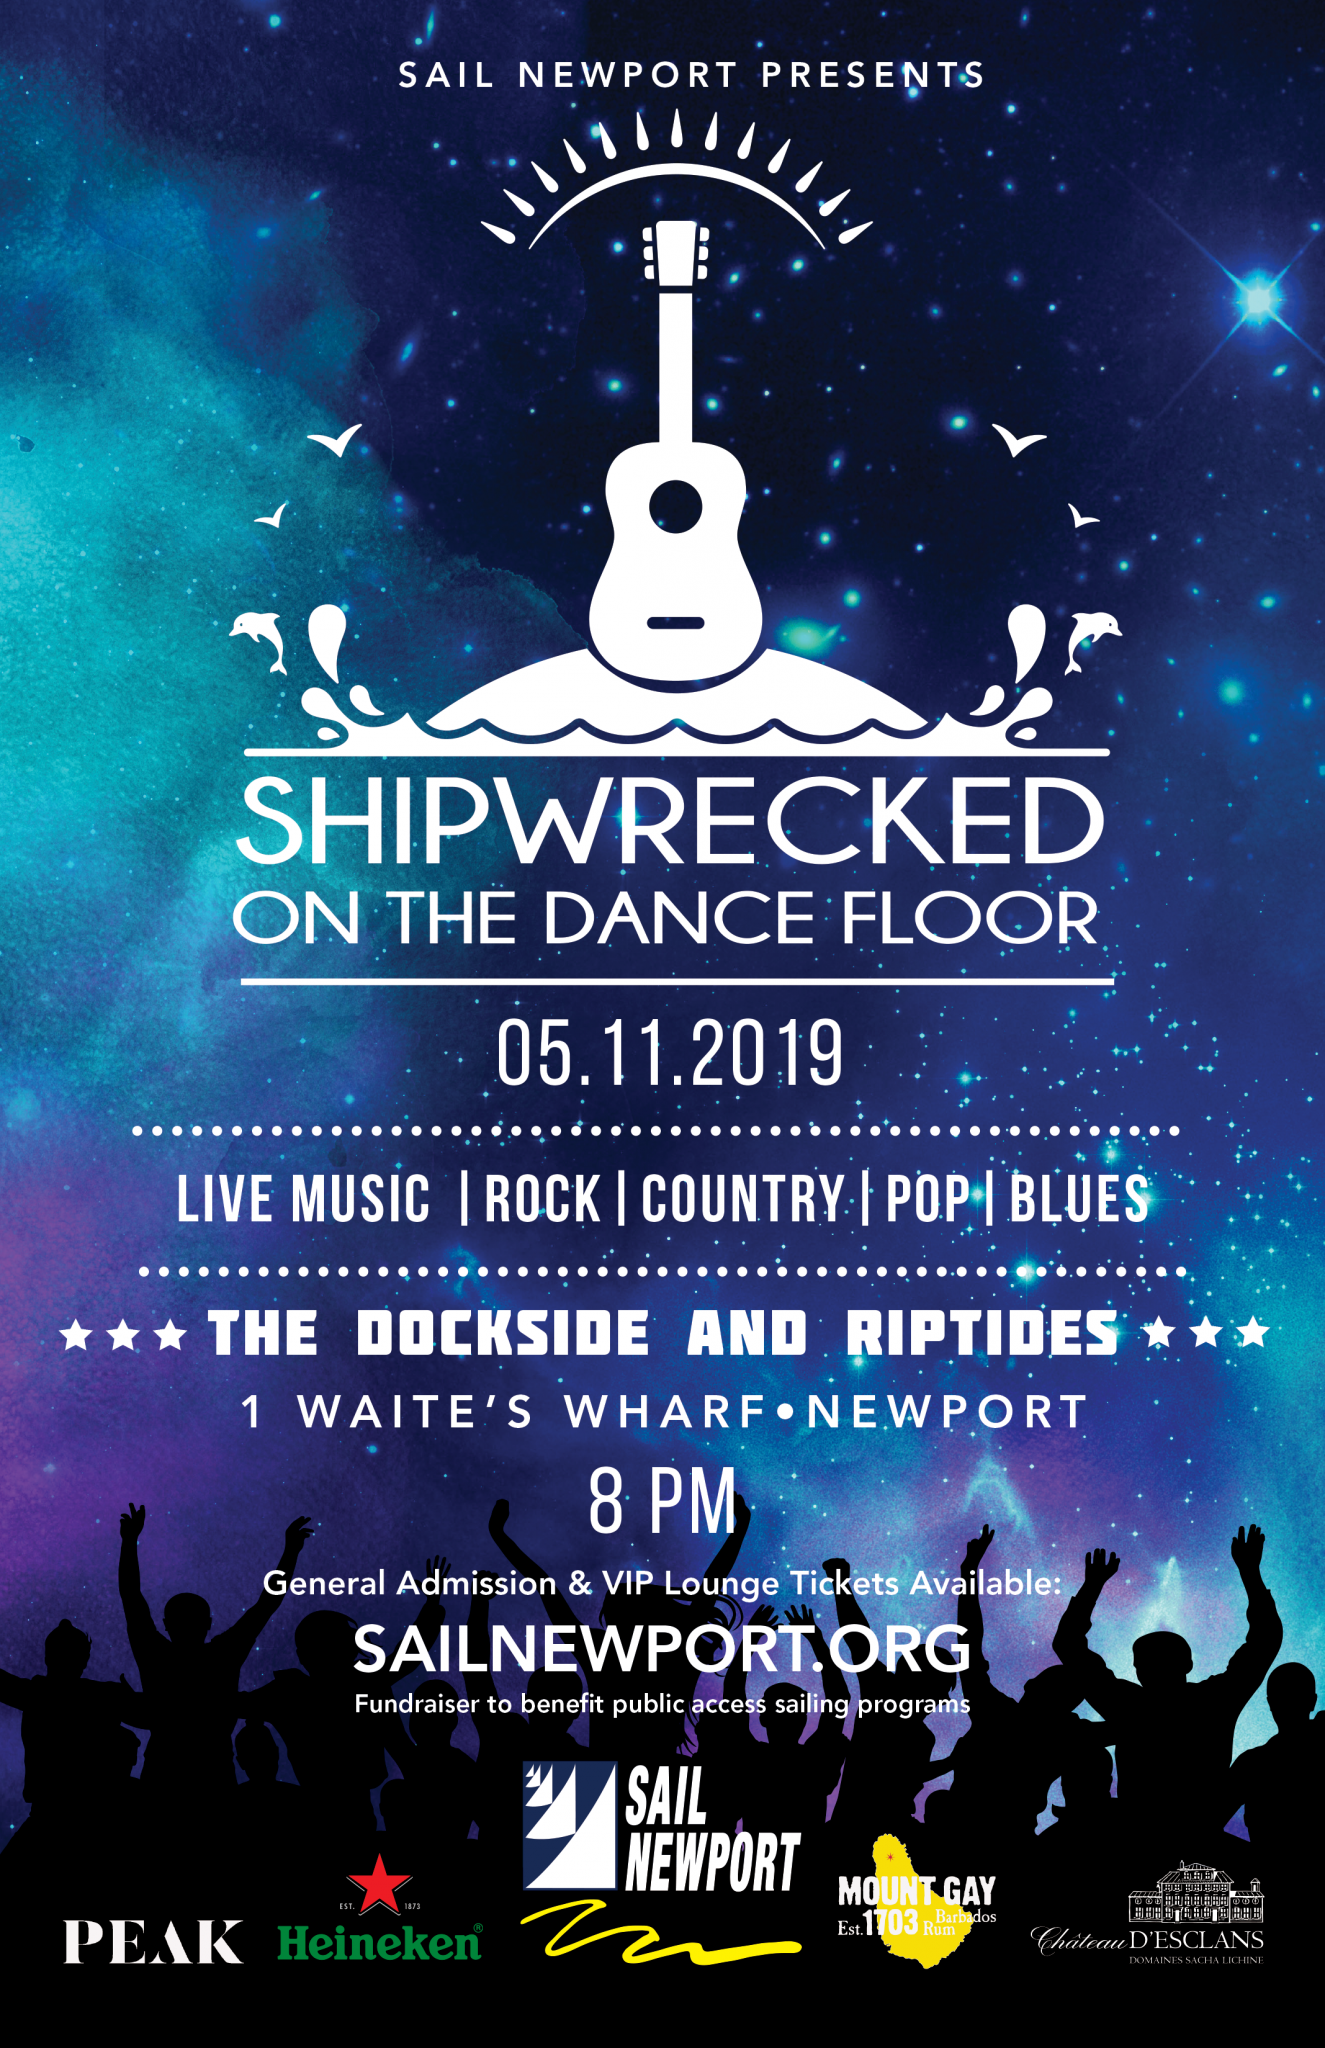 Shipwrecked poster 2019